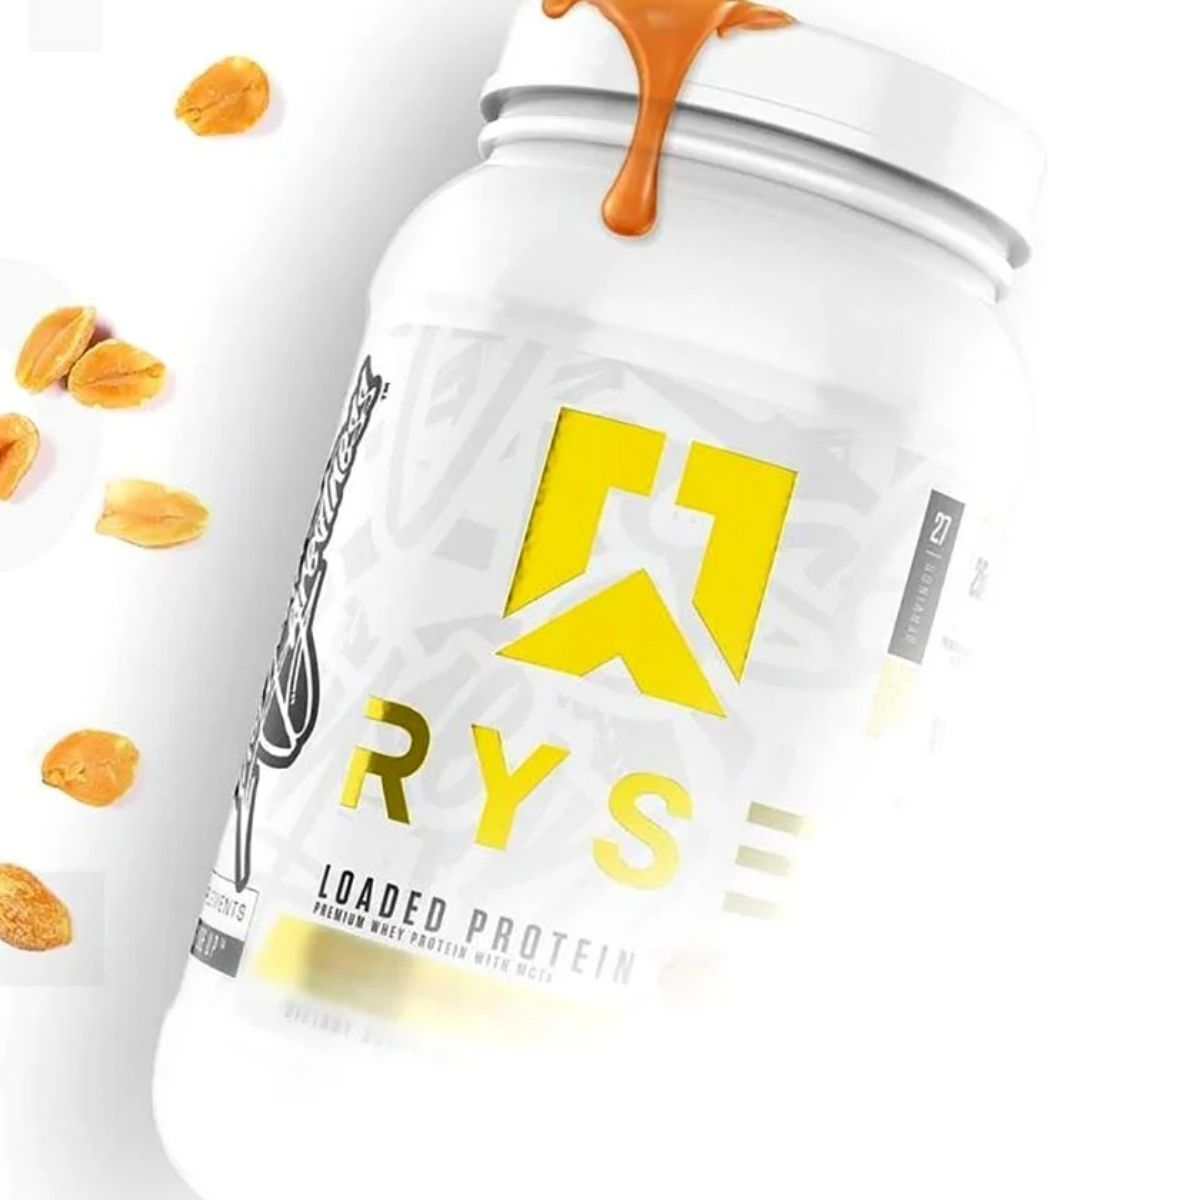 Ryse Loaded Protein Teases a New Flavor Which Looks to be Vanilla Peanut Butter